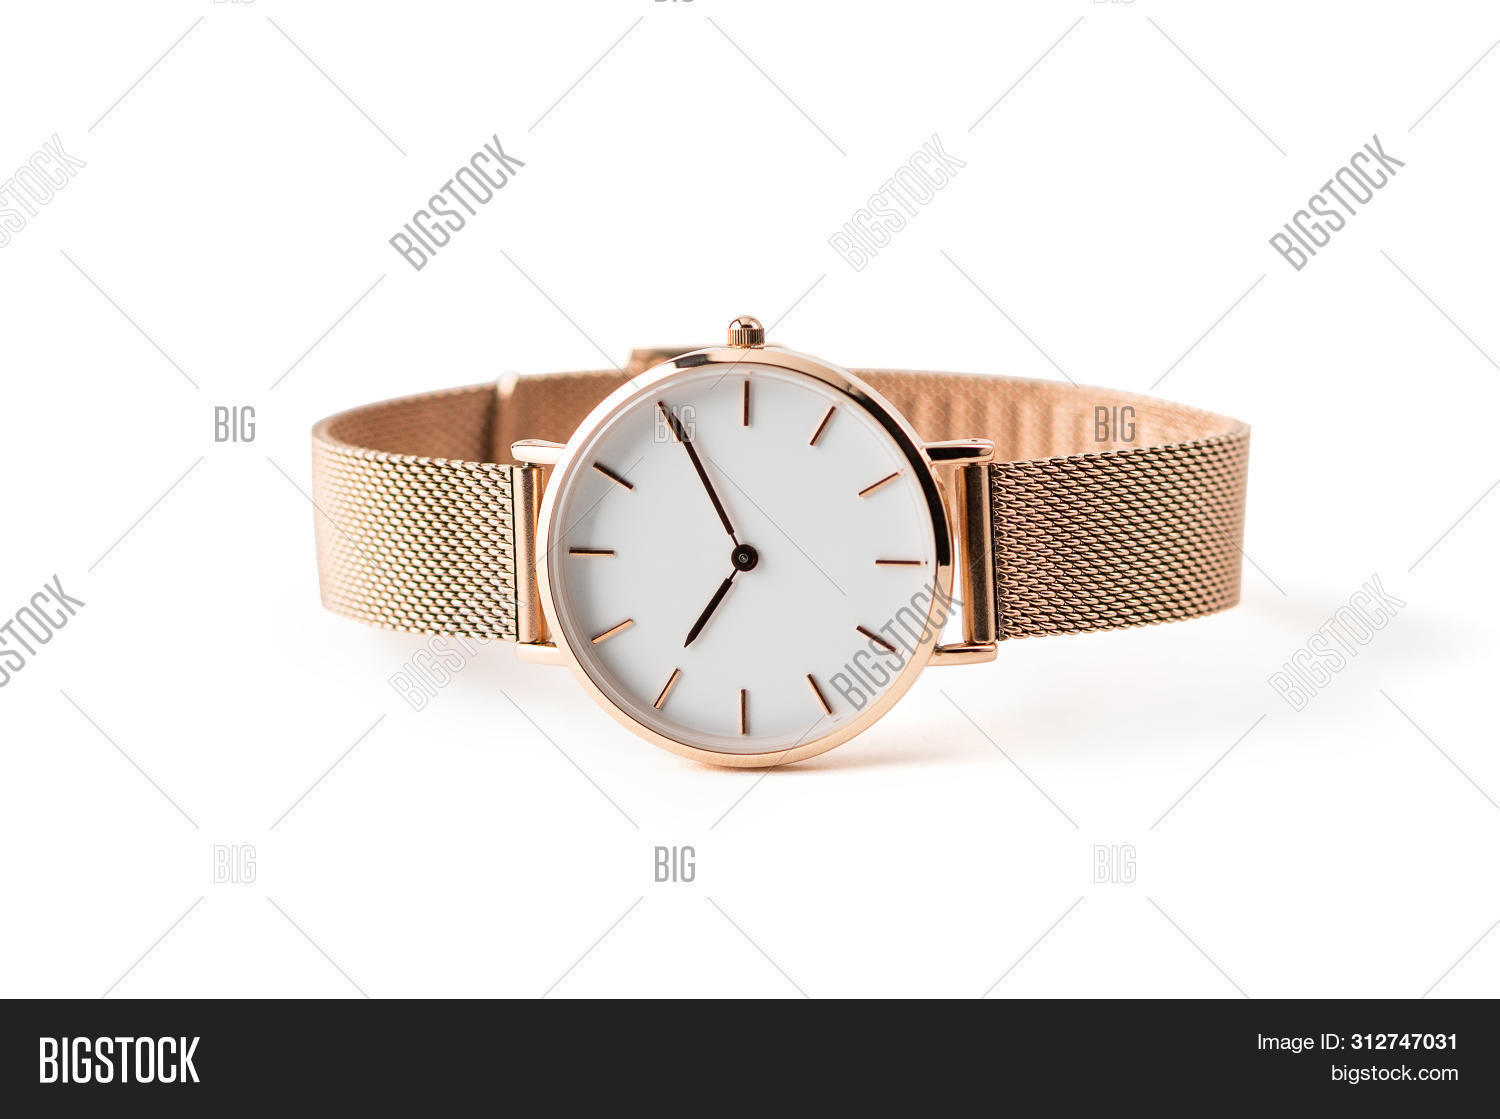 accessory,accuracy,background,black,bracelet,business,chrome,classic,clock,closeup,design,dial,elegance,expensive,fashion,female,gift,girl,gold,hand,hour,isolated,jewelry,lady,leather,luxury,men,metal,minute,model,modern,path,people,personal,pink,quality,round,sign,silver,steel,style,swiss,time,watch,watches,white,woman,wrist,wristwatch,young